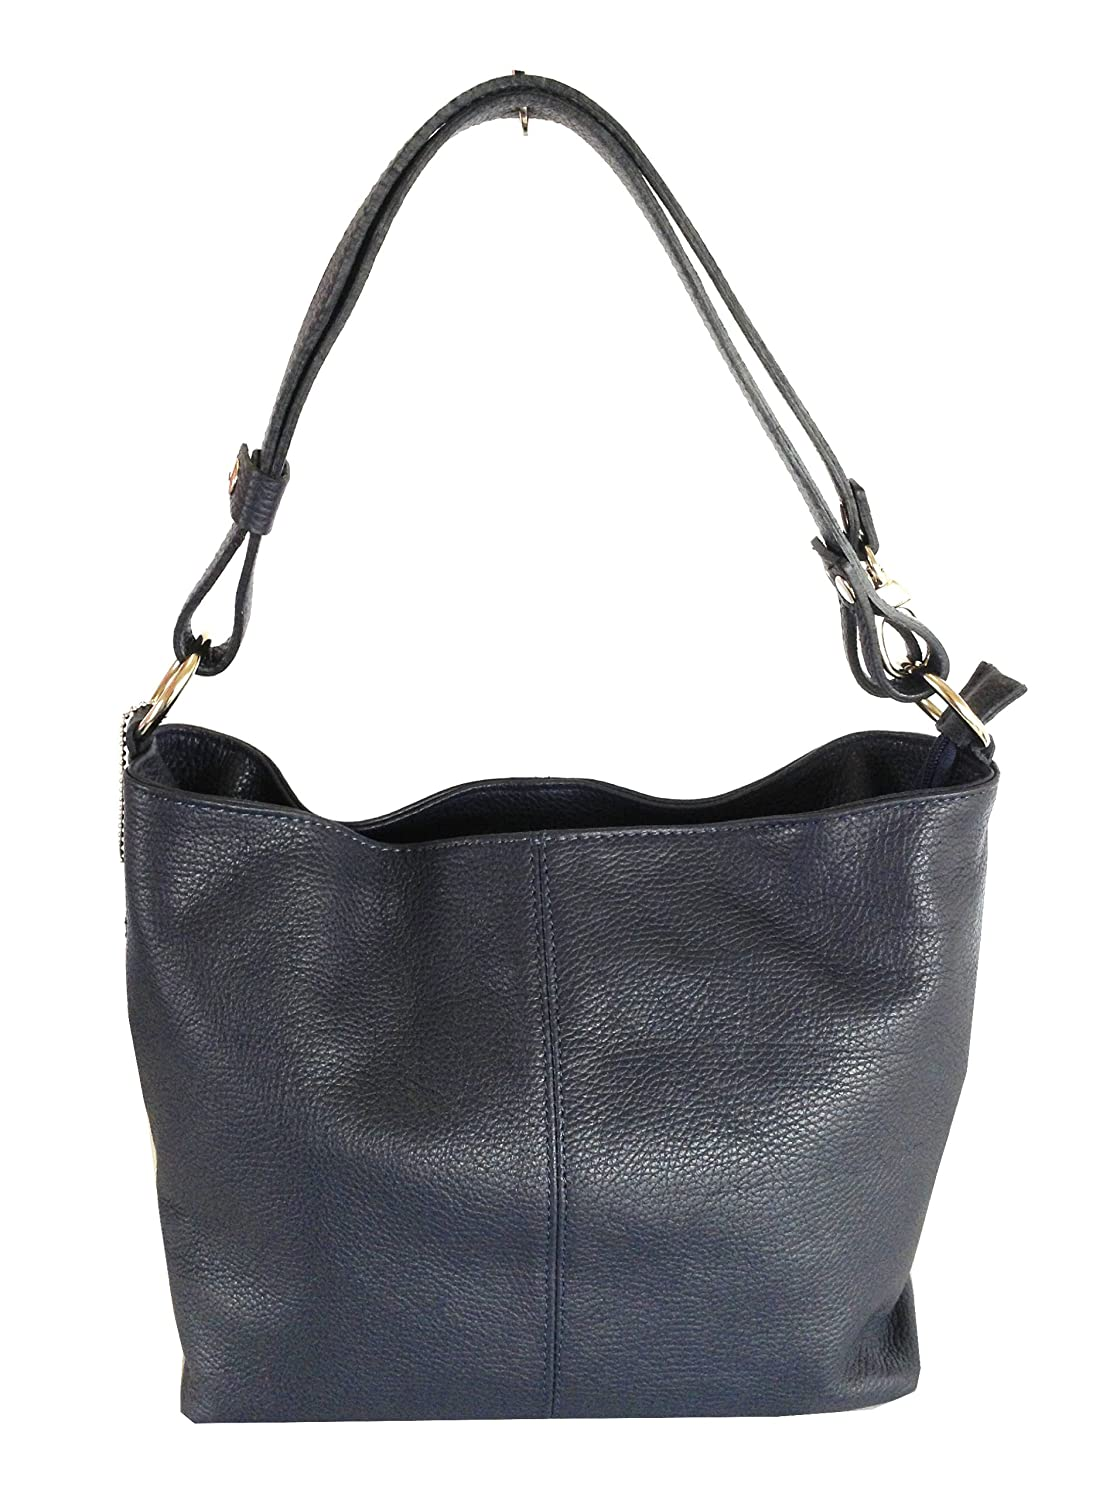 Navy Leather Bags Sale: Save Up to 50% Off! Shop oldsmobileclub.ga's huge selection of Navy Leather Bags - Over 50 styles available. FREE Shipping & Exchanges, and a % price guarantee!